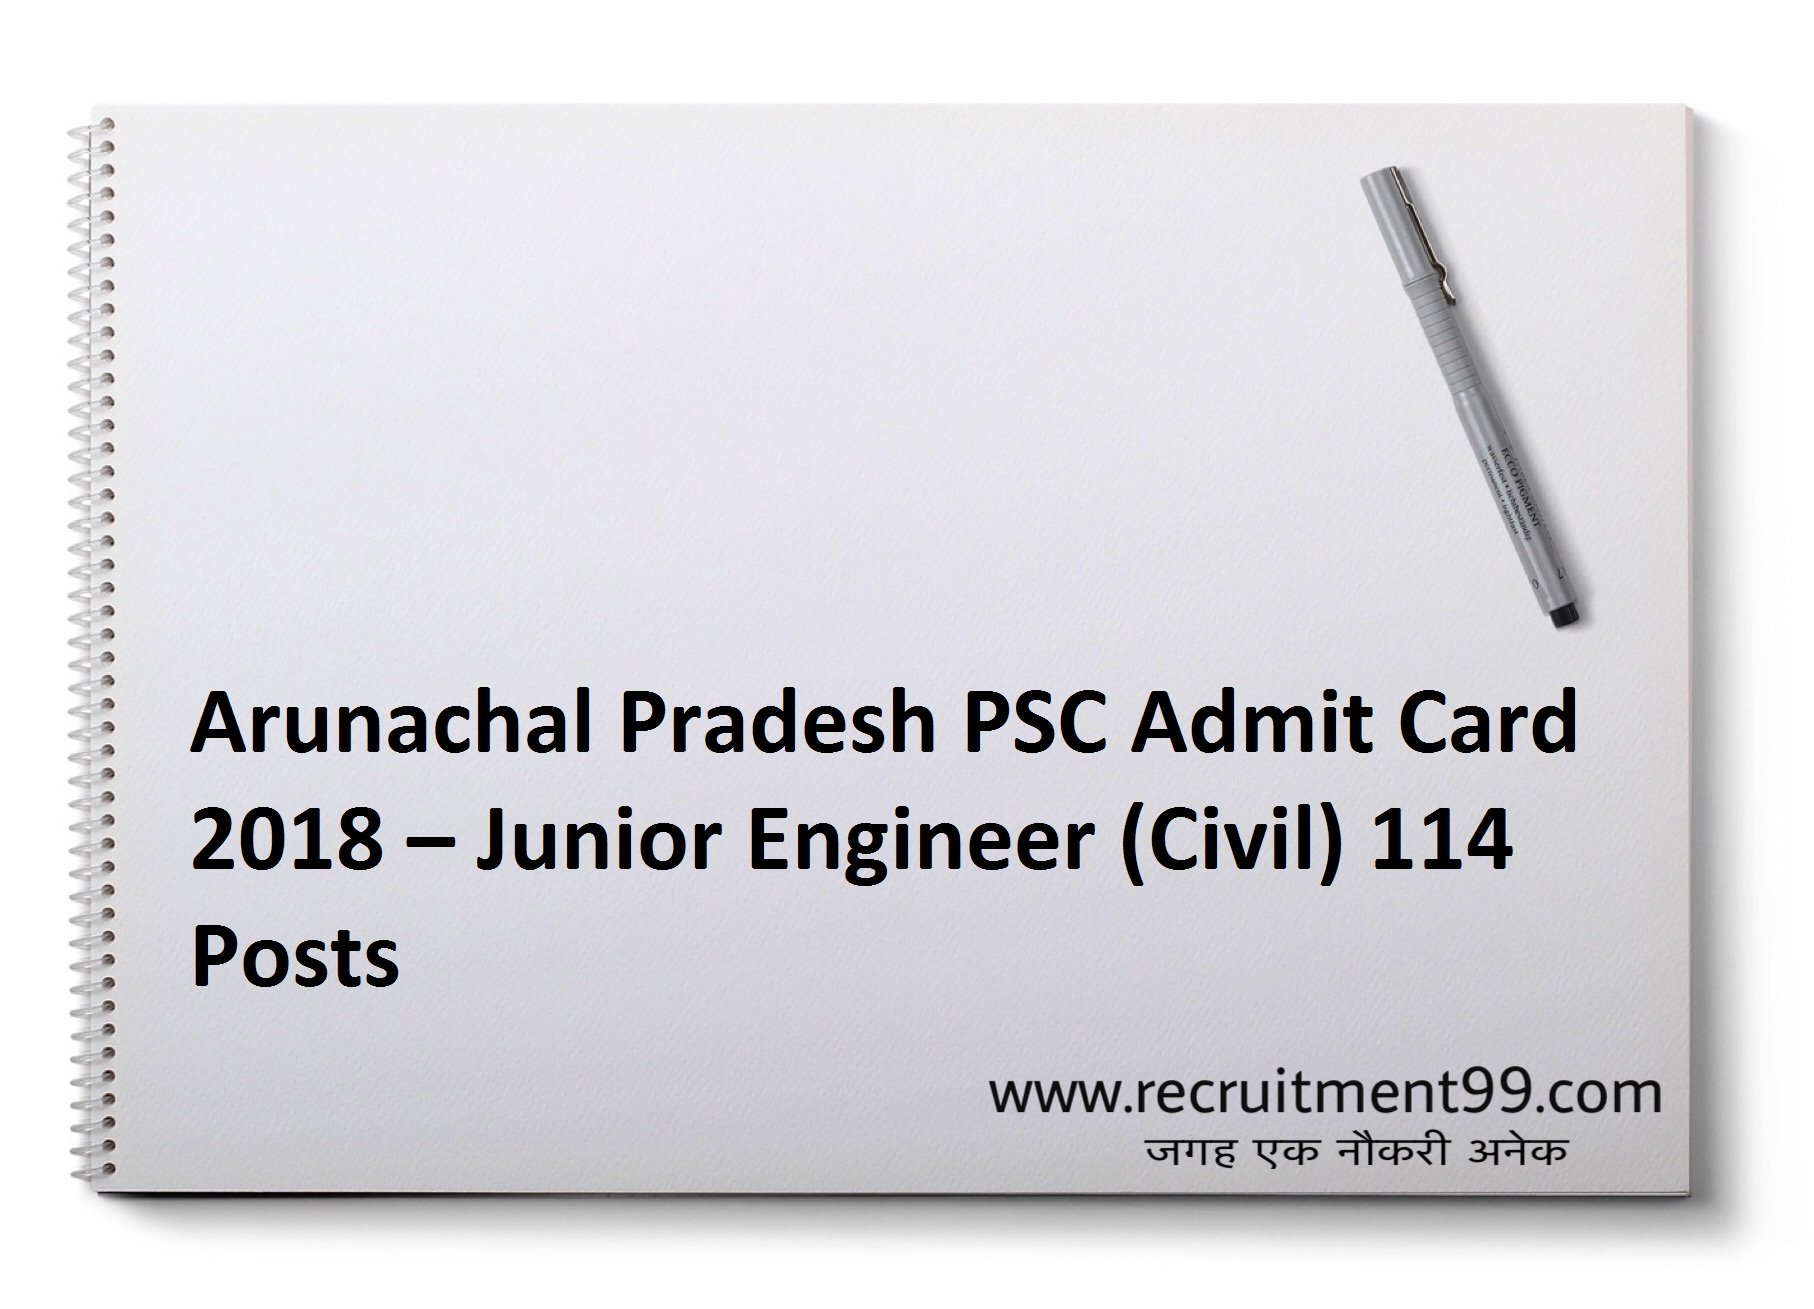 Arunachal Pradesh PSC Junior Engineer (Civil) Recruitment Admit Card Result 2018